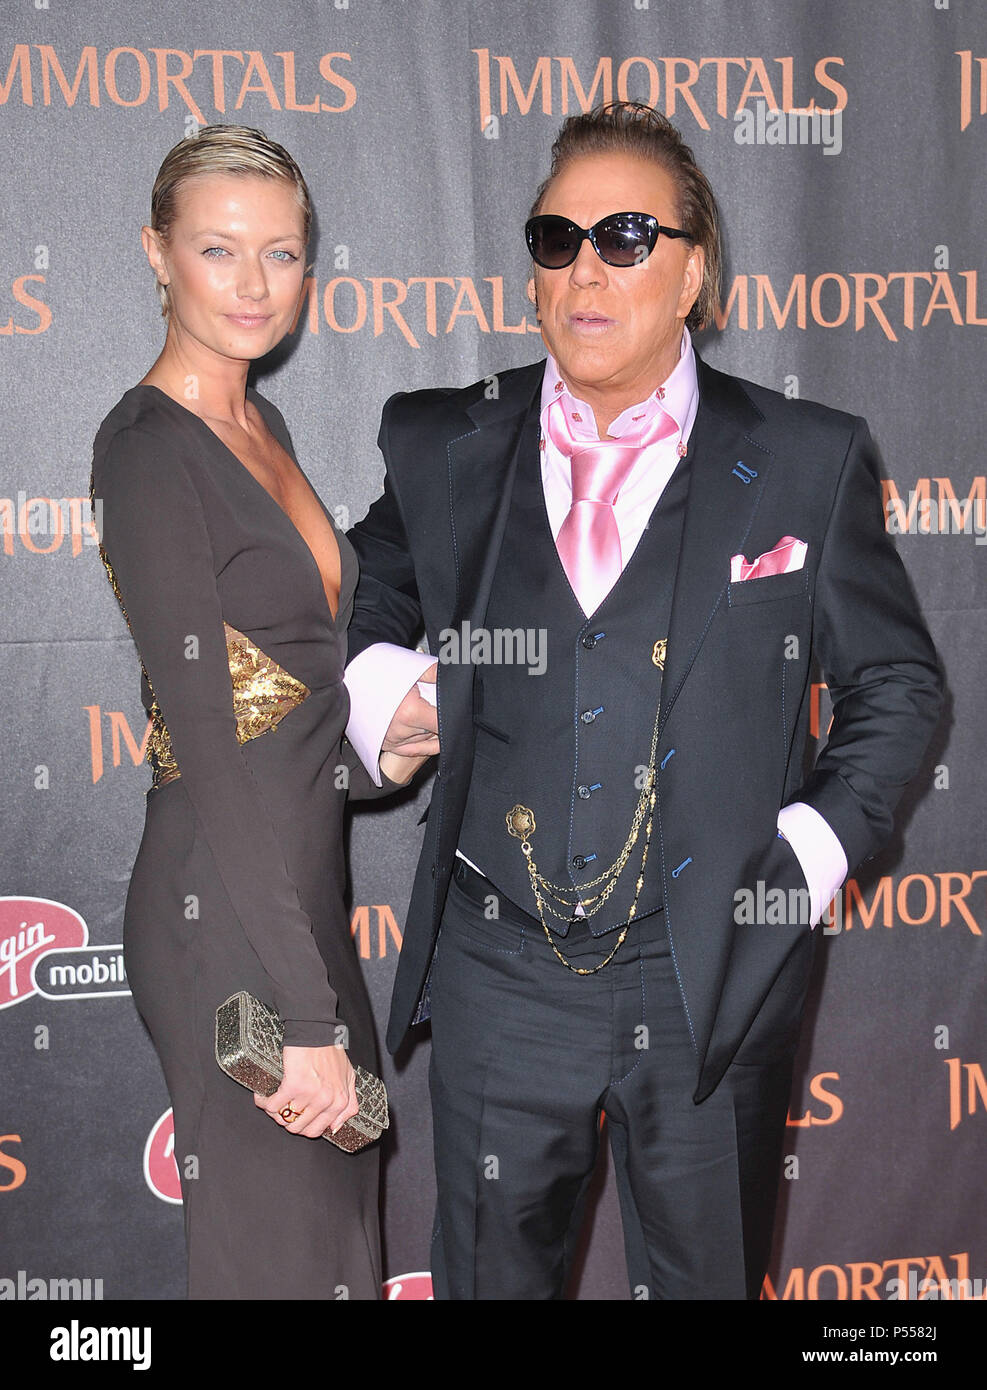 Mickey Rourke Anastassija Makarenko At The Immortals Premiere At The Nokia Theatre In Los Angelesmickey Rourke Anastassija Makarenko 34 Red Carpet Event Vertical Usa Film Industry Celebrities Photography Bestof Arts Culture Anastassija is a model of russian ancestry. https www alamy com mickey rourke anastassija makarenko at the immortals premiere at the nokia theatre in los angelesmickey rourke anastassija makarenko 34 red carpet event vertical usa film industry celebrities photography bestof arts culture and entertainment topix celebrities fashion vertical best of event in hollywood life california red carpet and backstage usa film industry celebrities movie celebrities tv celebrities music celebrities photography bestof arts culture and entertainment topix vertical family from from the year 2011 inquiry tsuni gamma usac image209713802 html